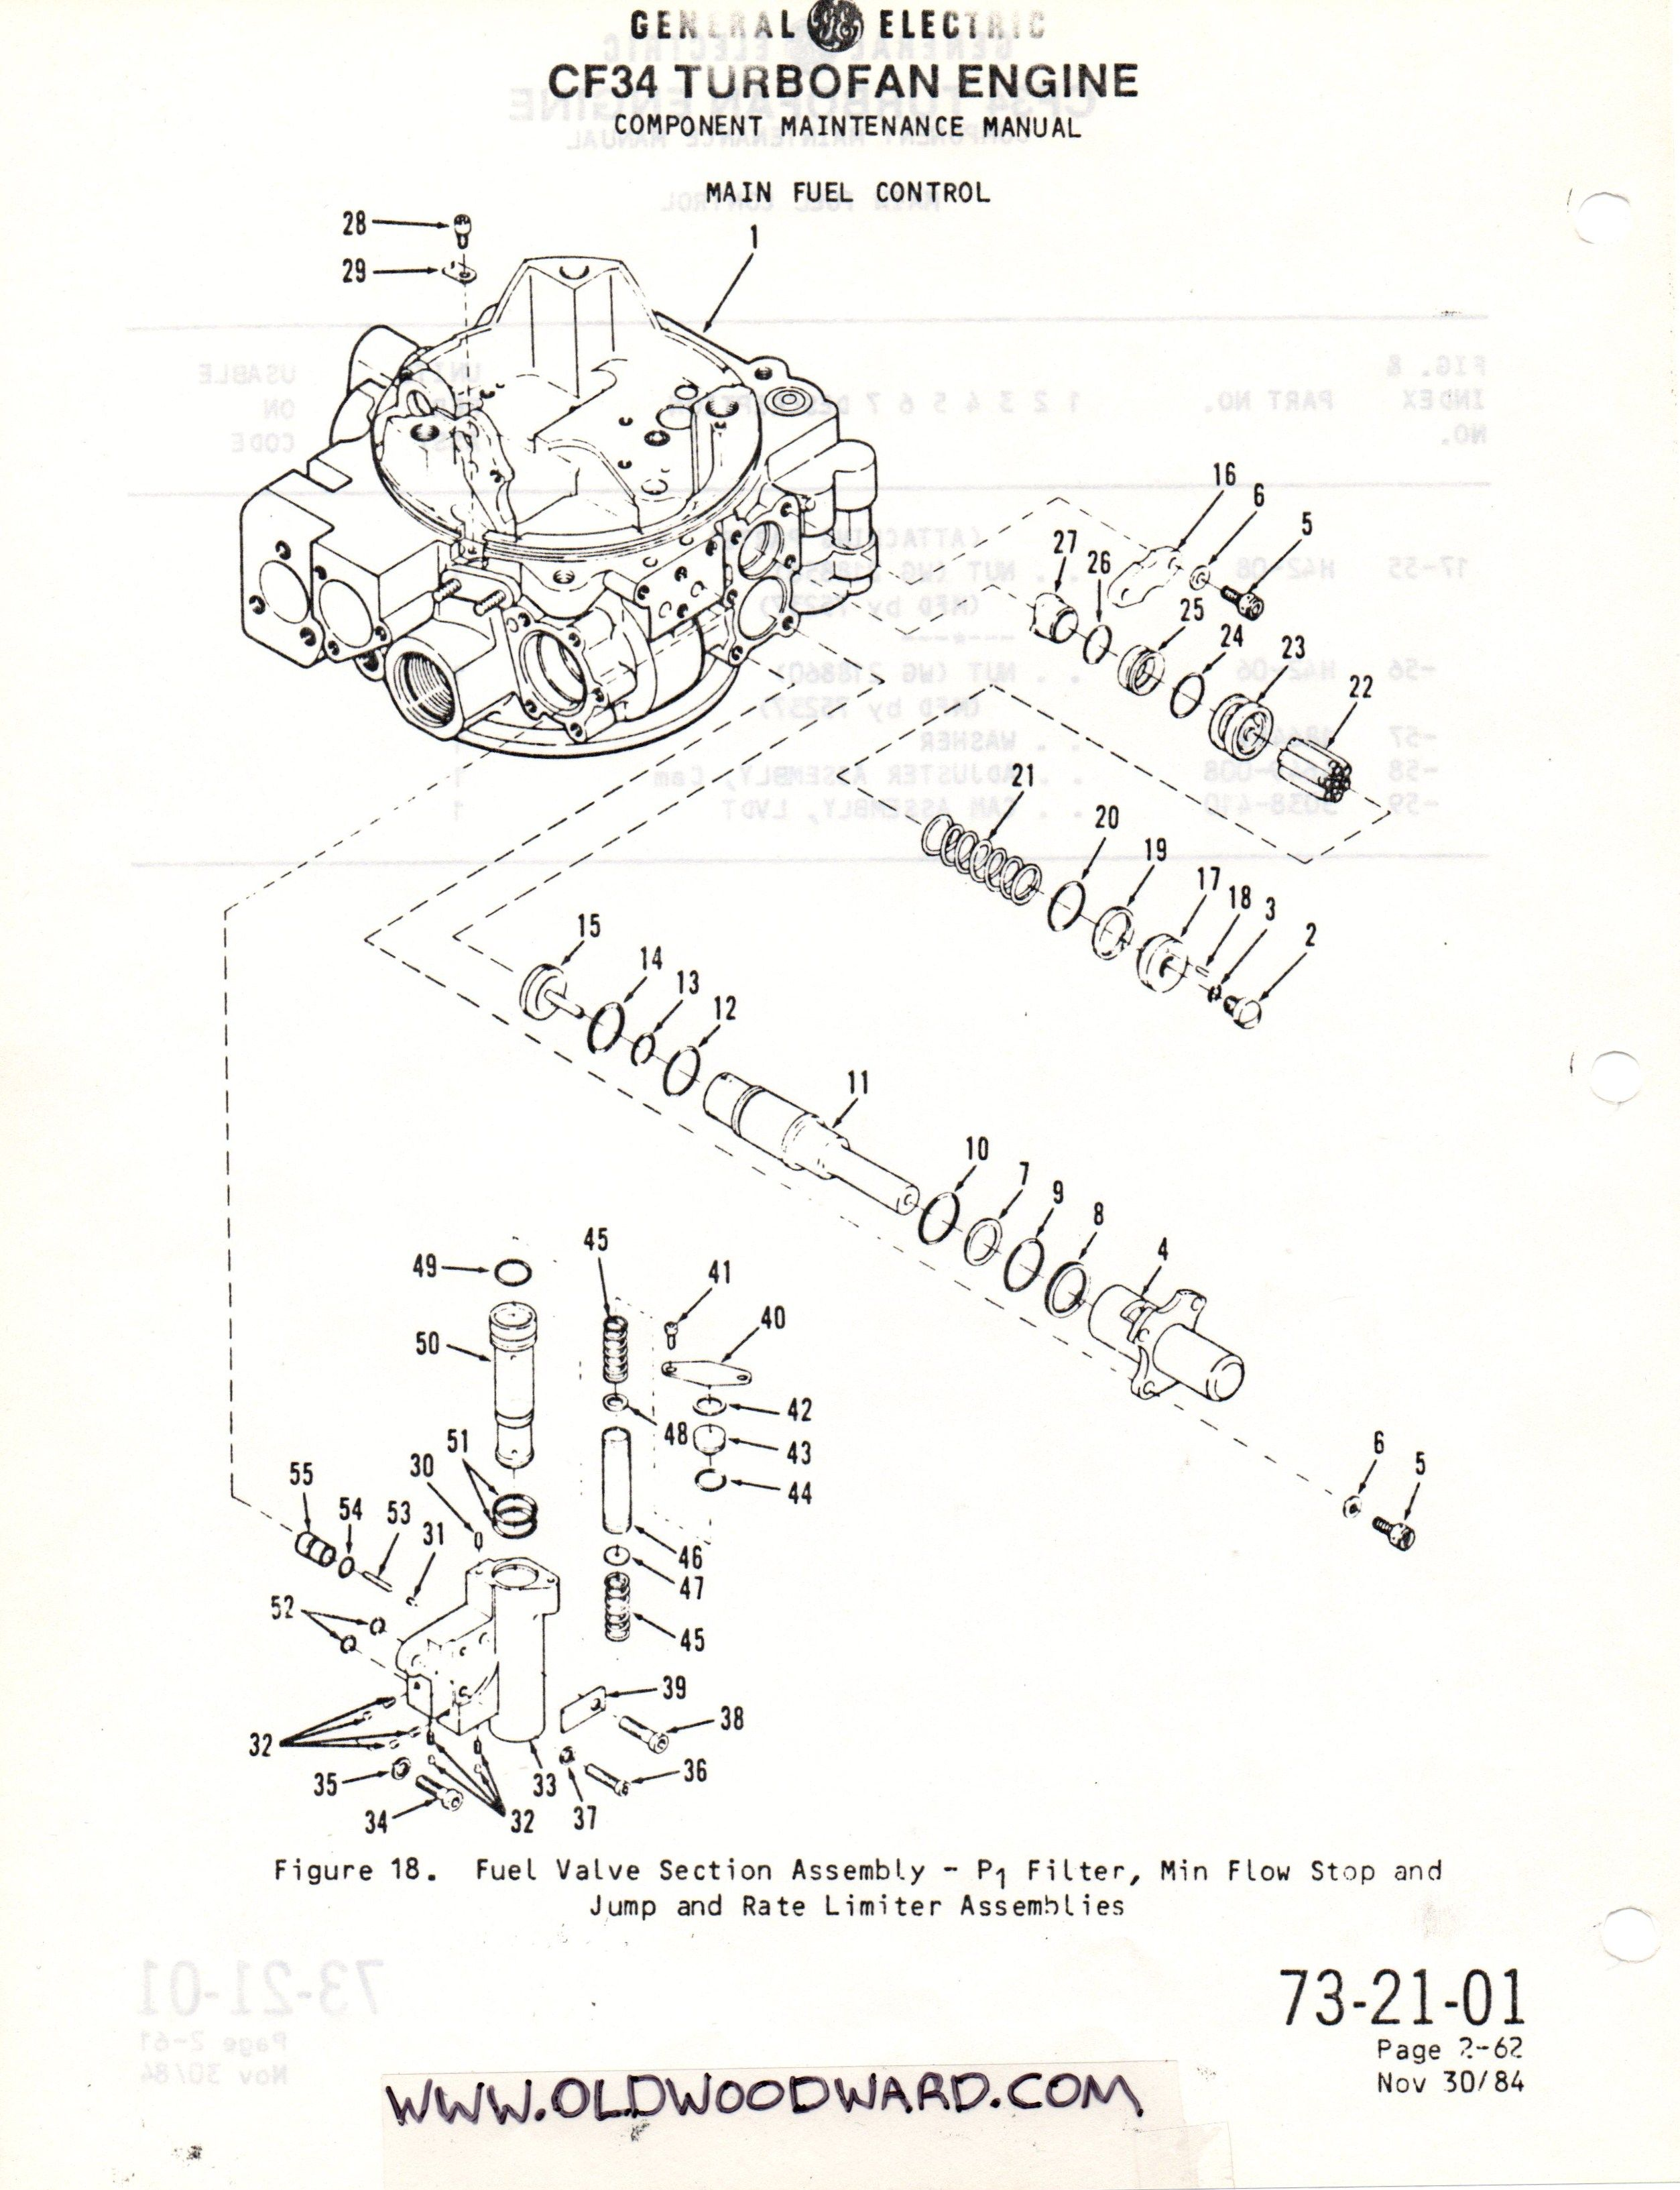 hight resolution of woodward governor company main engine control component training manual schematic drawing woodward governor